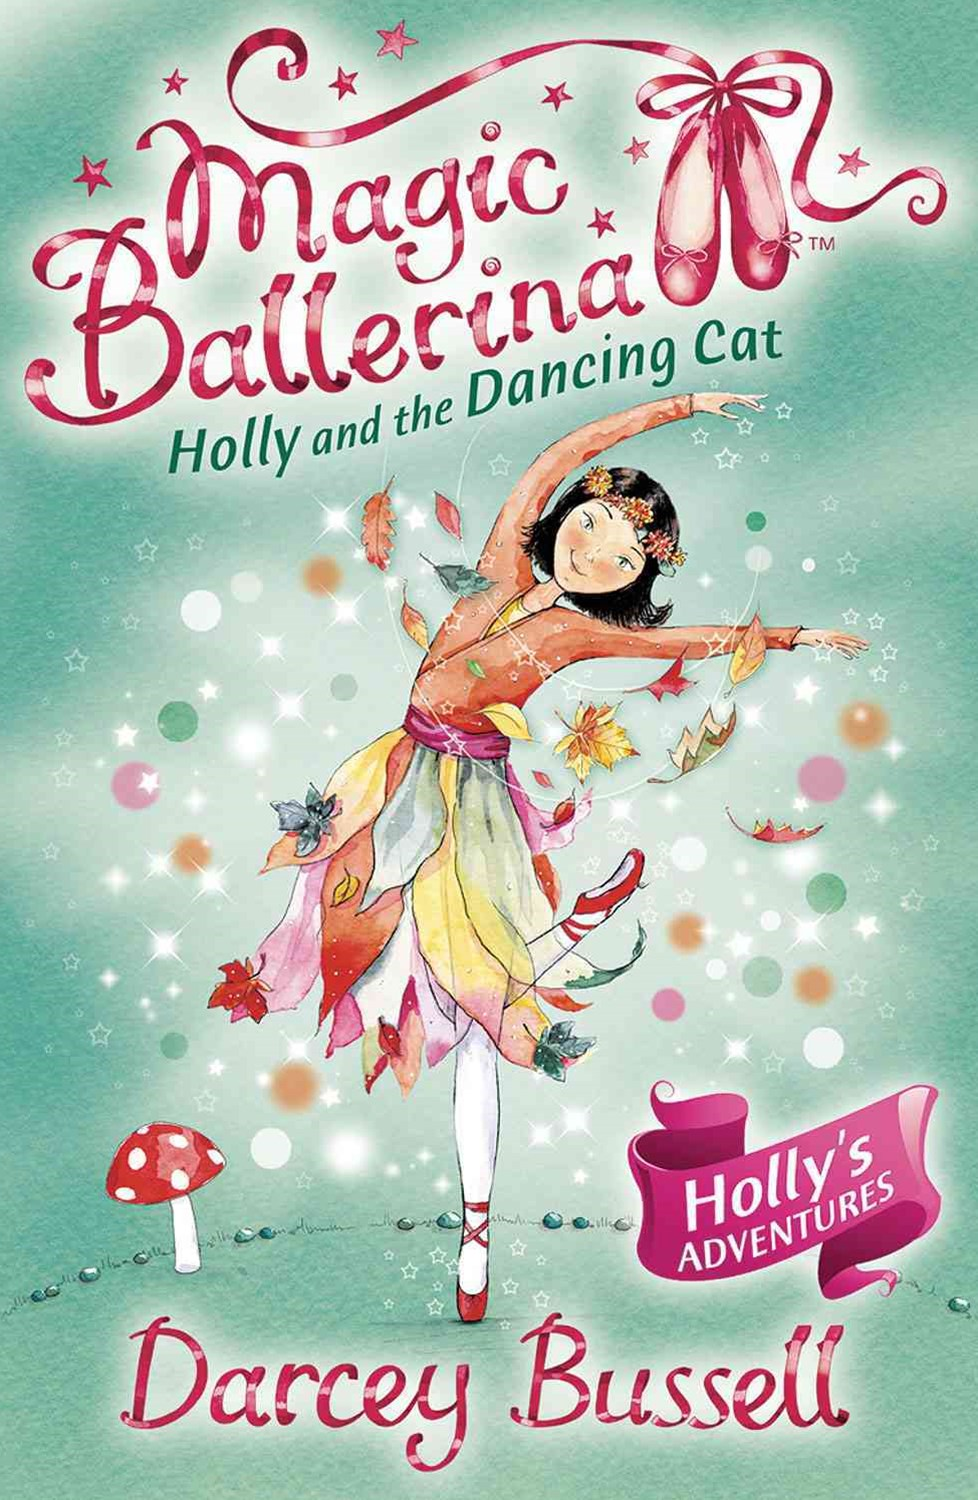 Holly and the Dancing Cat